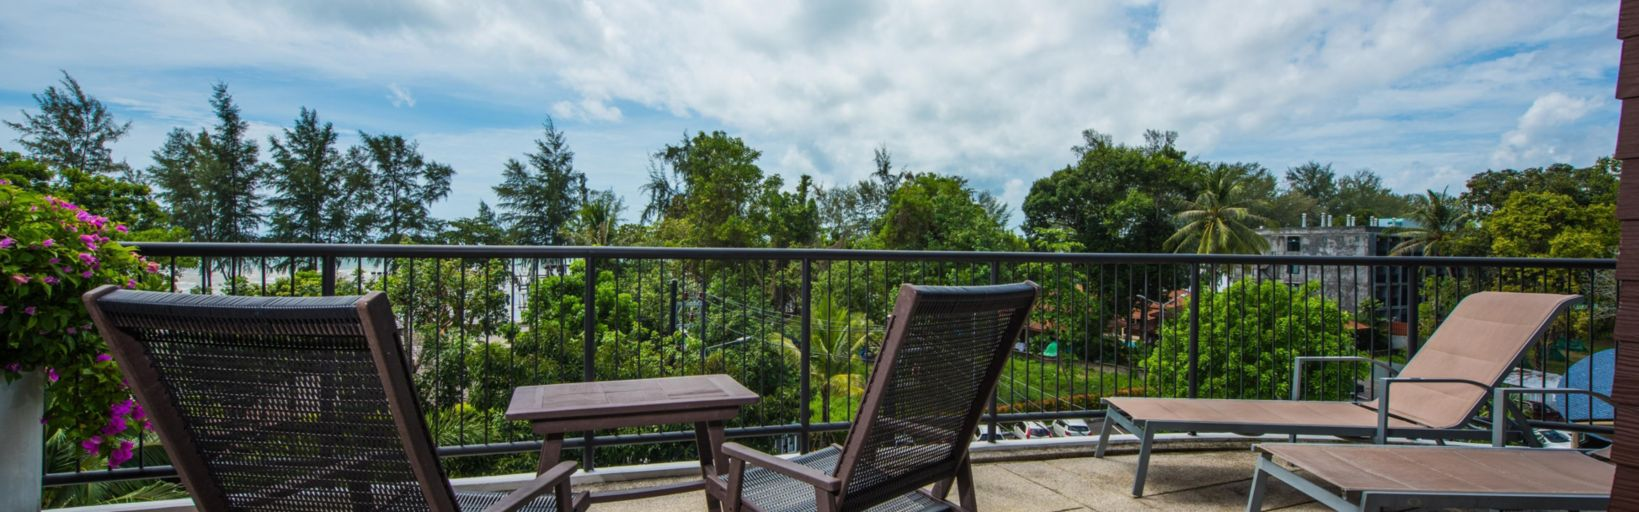 holiday-inn-resort-krabi-5289708255-16×5